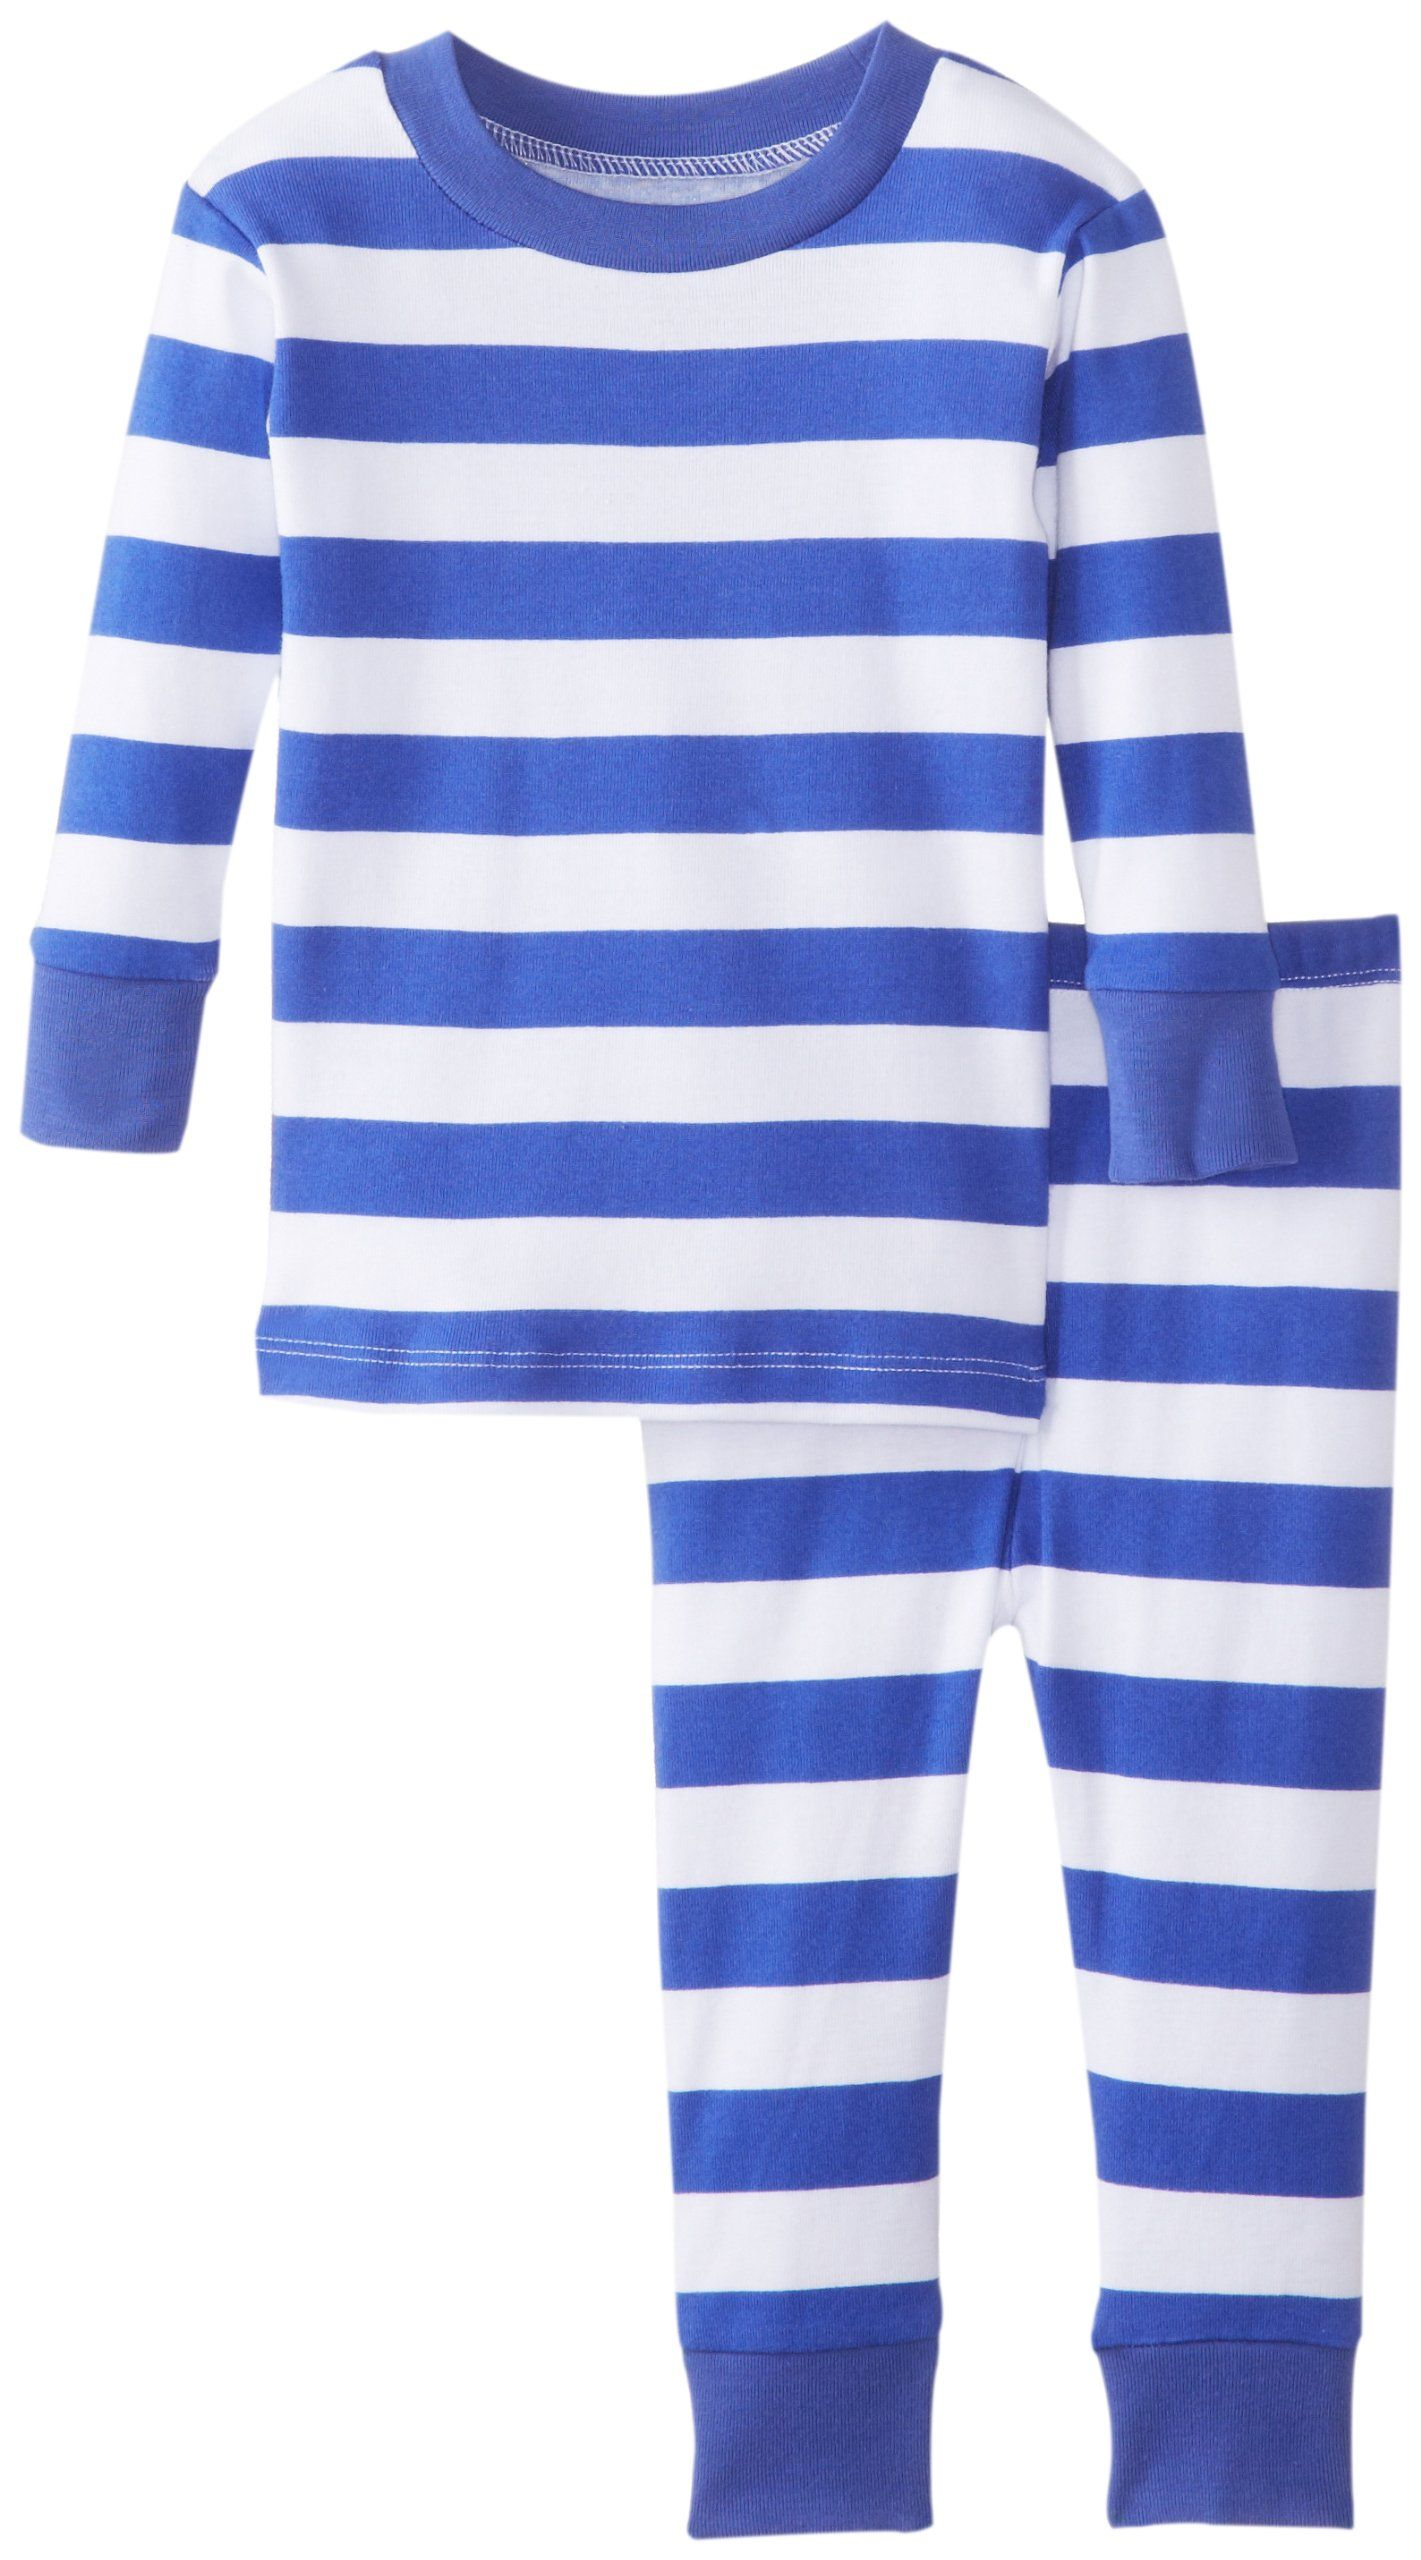 amazoncom new jammies babyboys infant blue white stripes  - amazoncom new jammies babyboys infant blue white stripes organic babypajamas